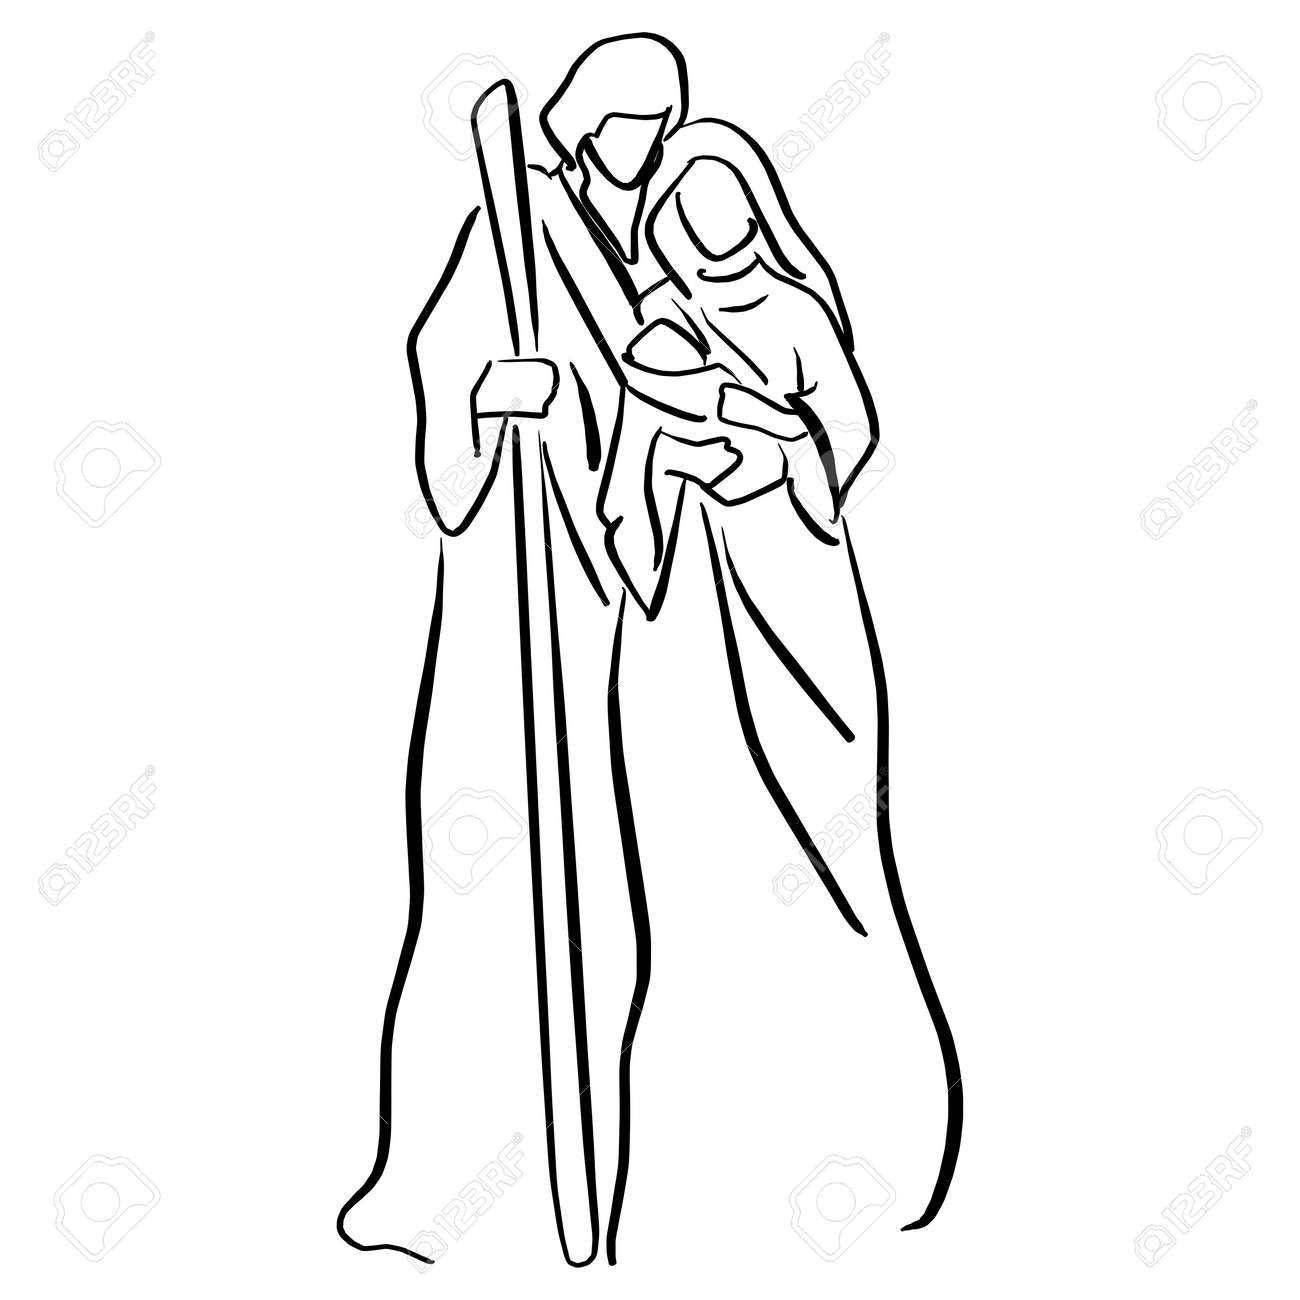 Nativity Scene with baby Jesus, Mary and Joseph vector illustration sketch doodle hand drawn with black lines isolated on white background. - 111834910